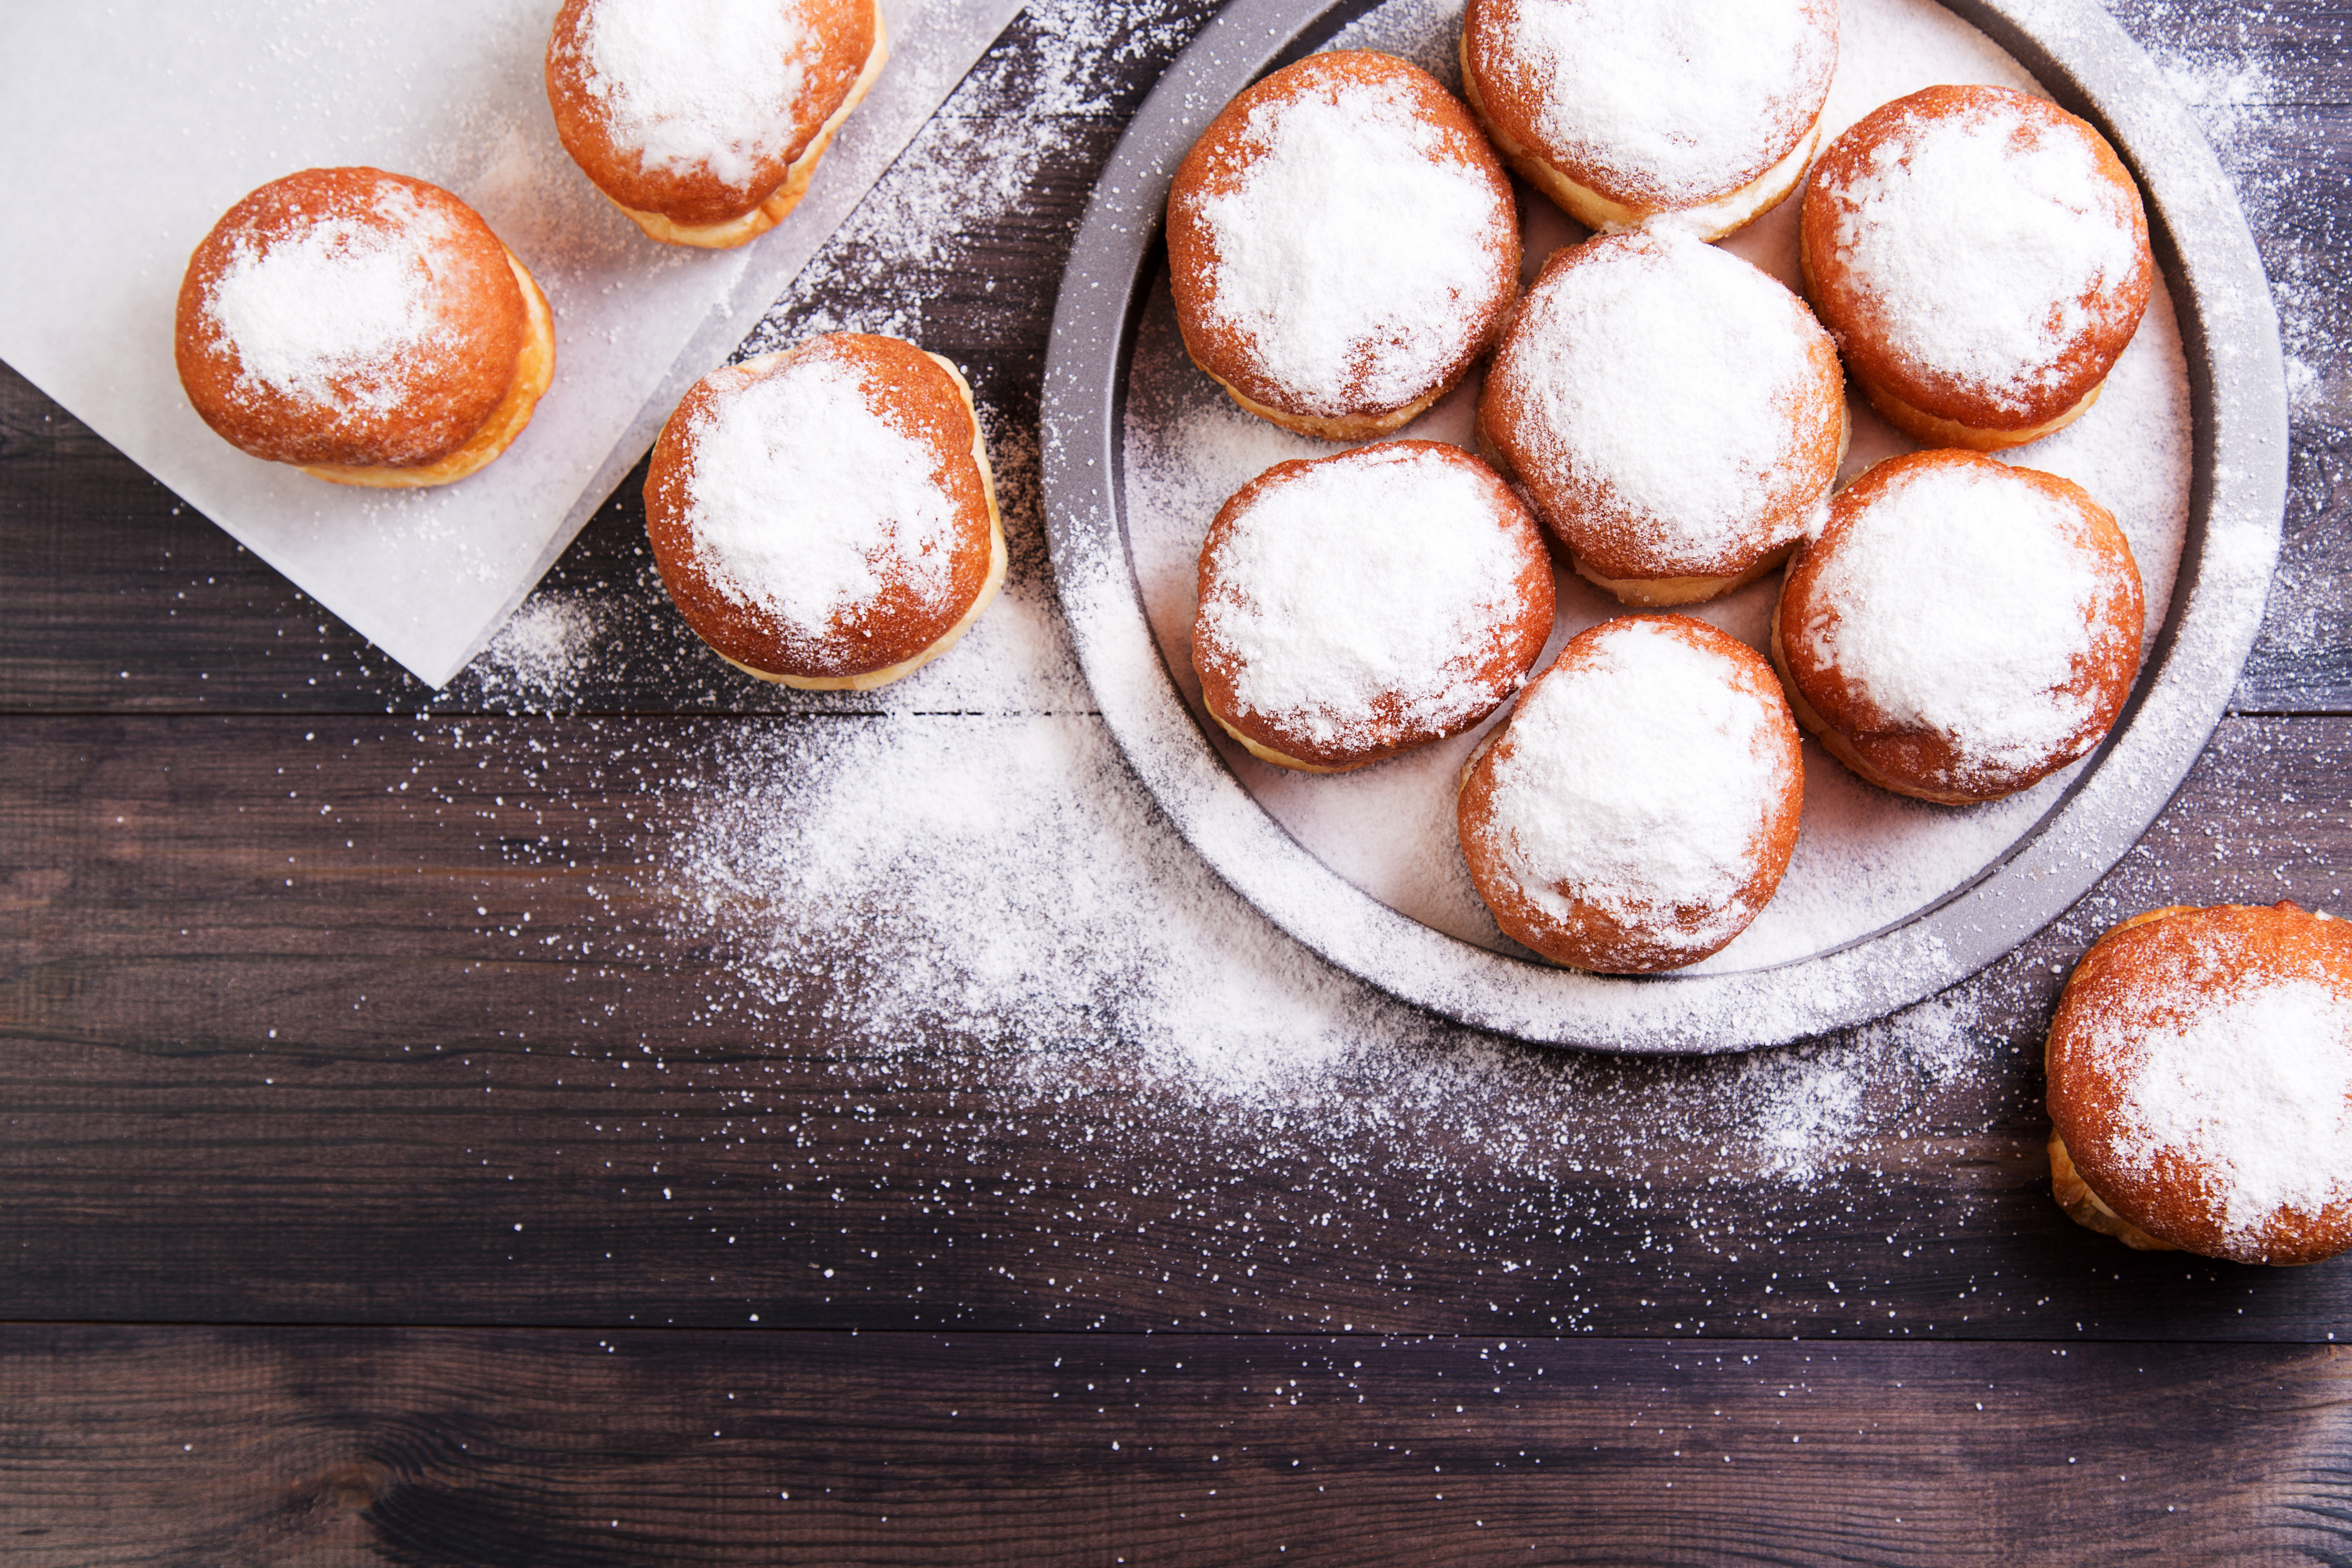 German donuts - berliner with jam and icing sugar in a tray on a wooden background. Top view